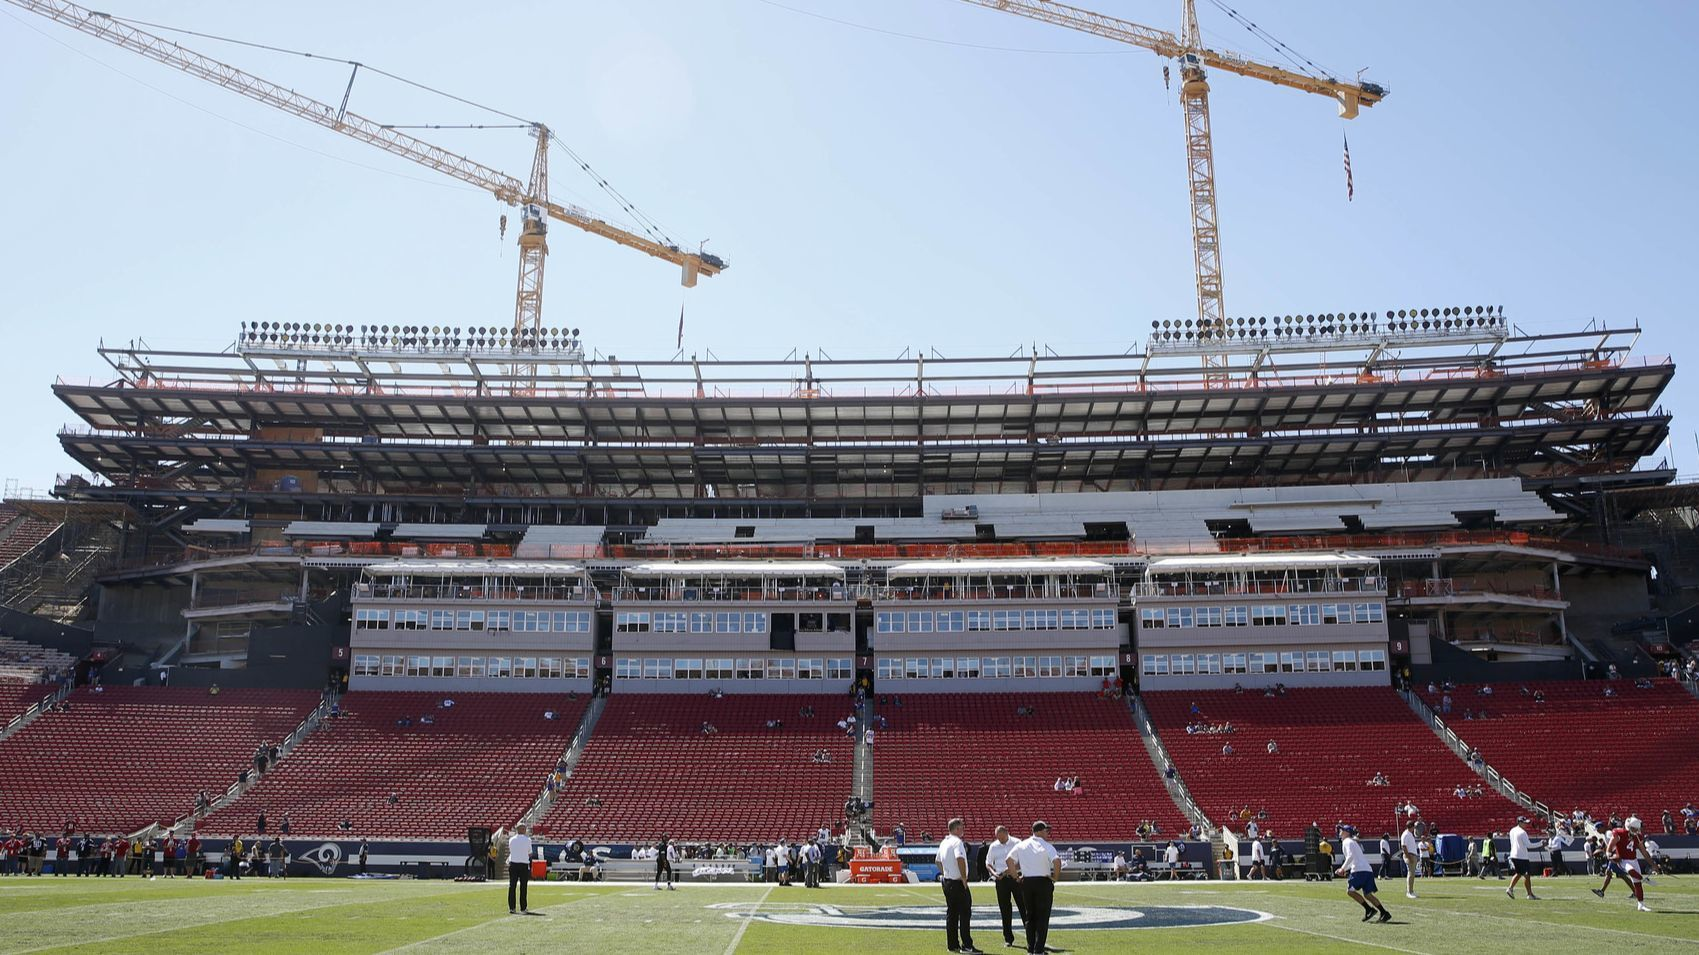 Naming rights deal ignores the fact that the Coliseum is supposed to be a memorial